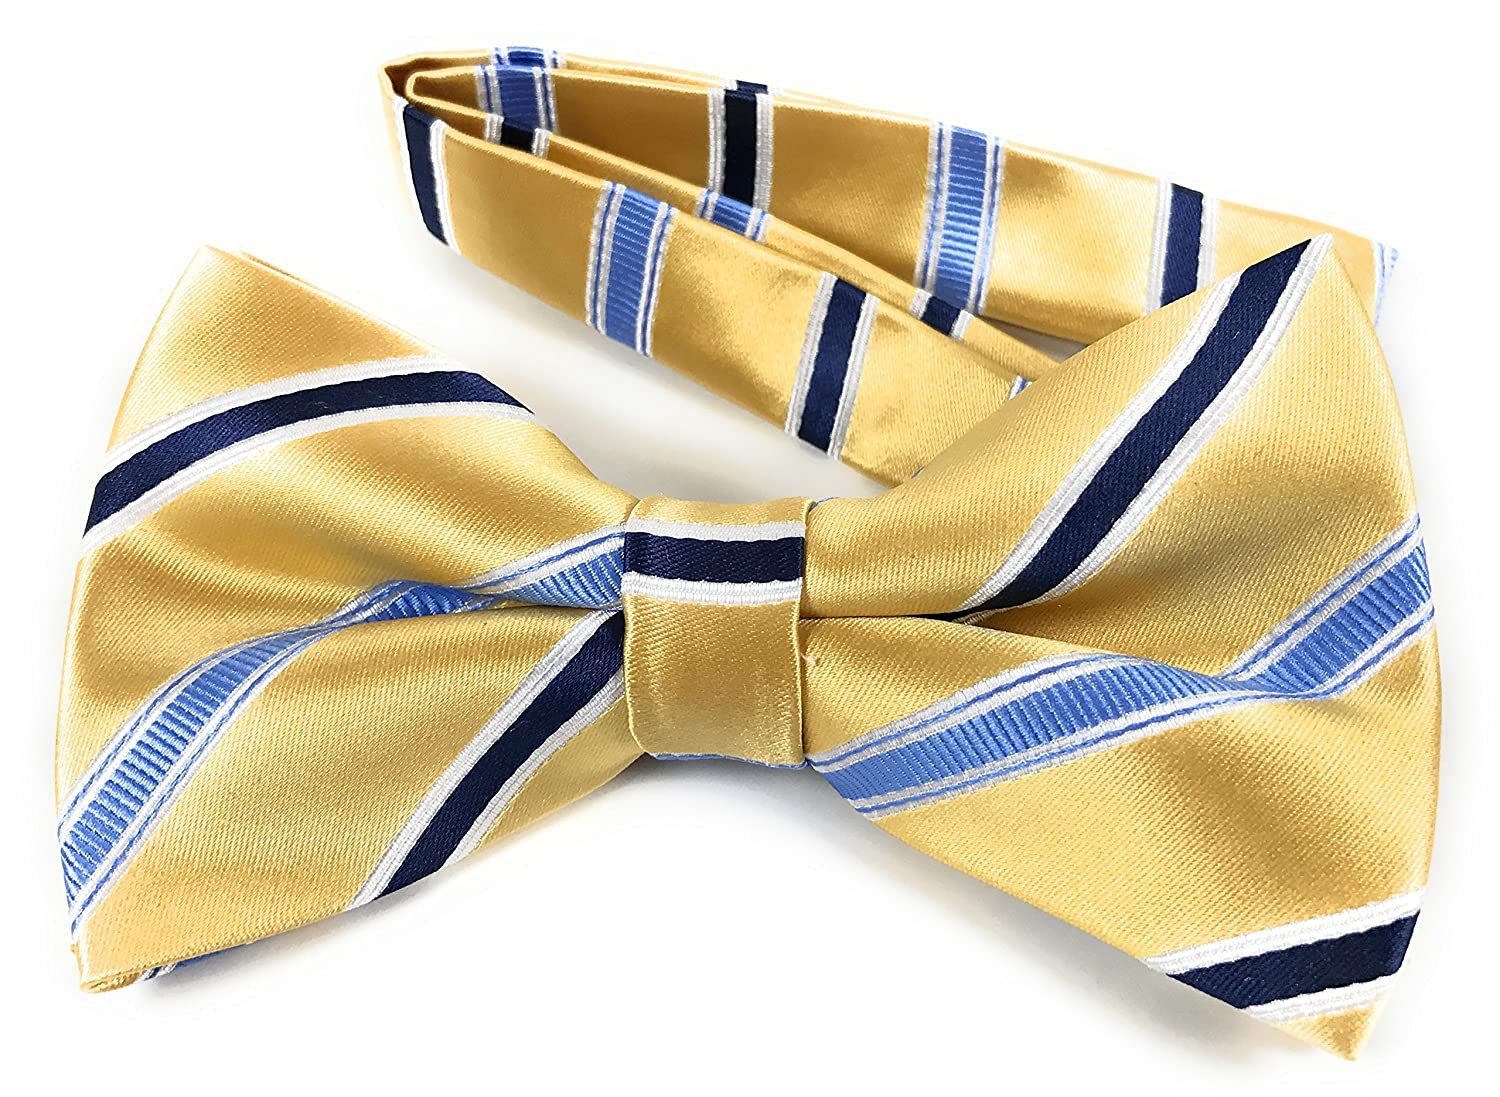 Honey Gold Woven Pre-Tied Bow Tie with Steel Blue and Dark Navy Blue Stripes